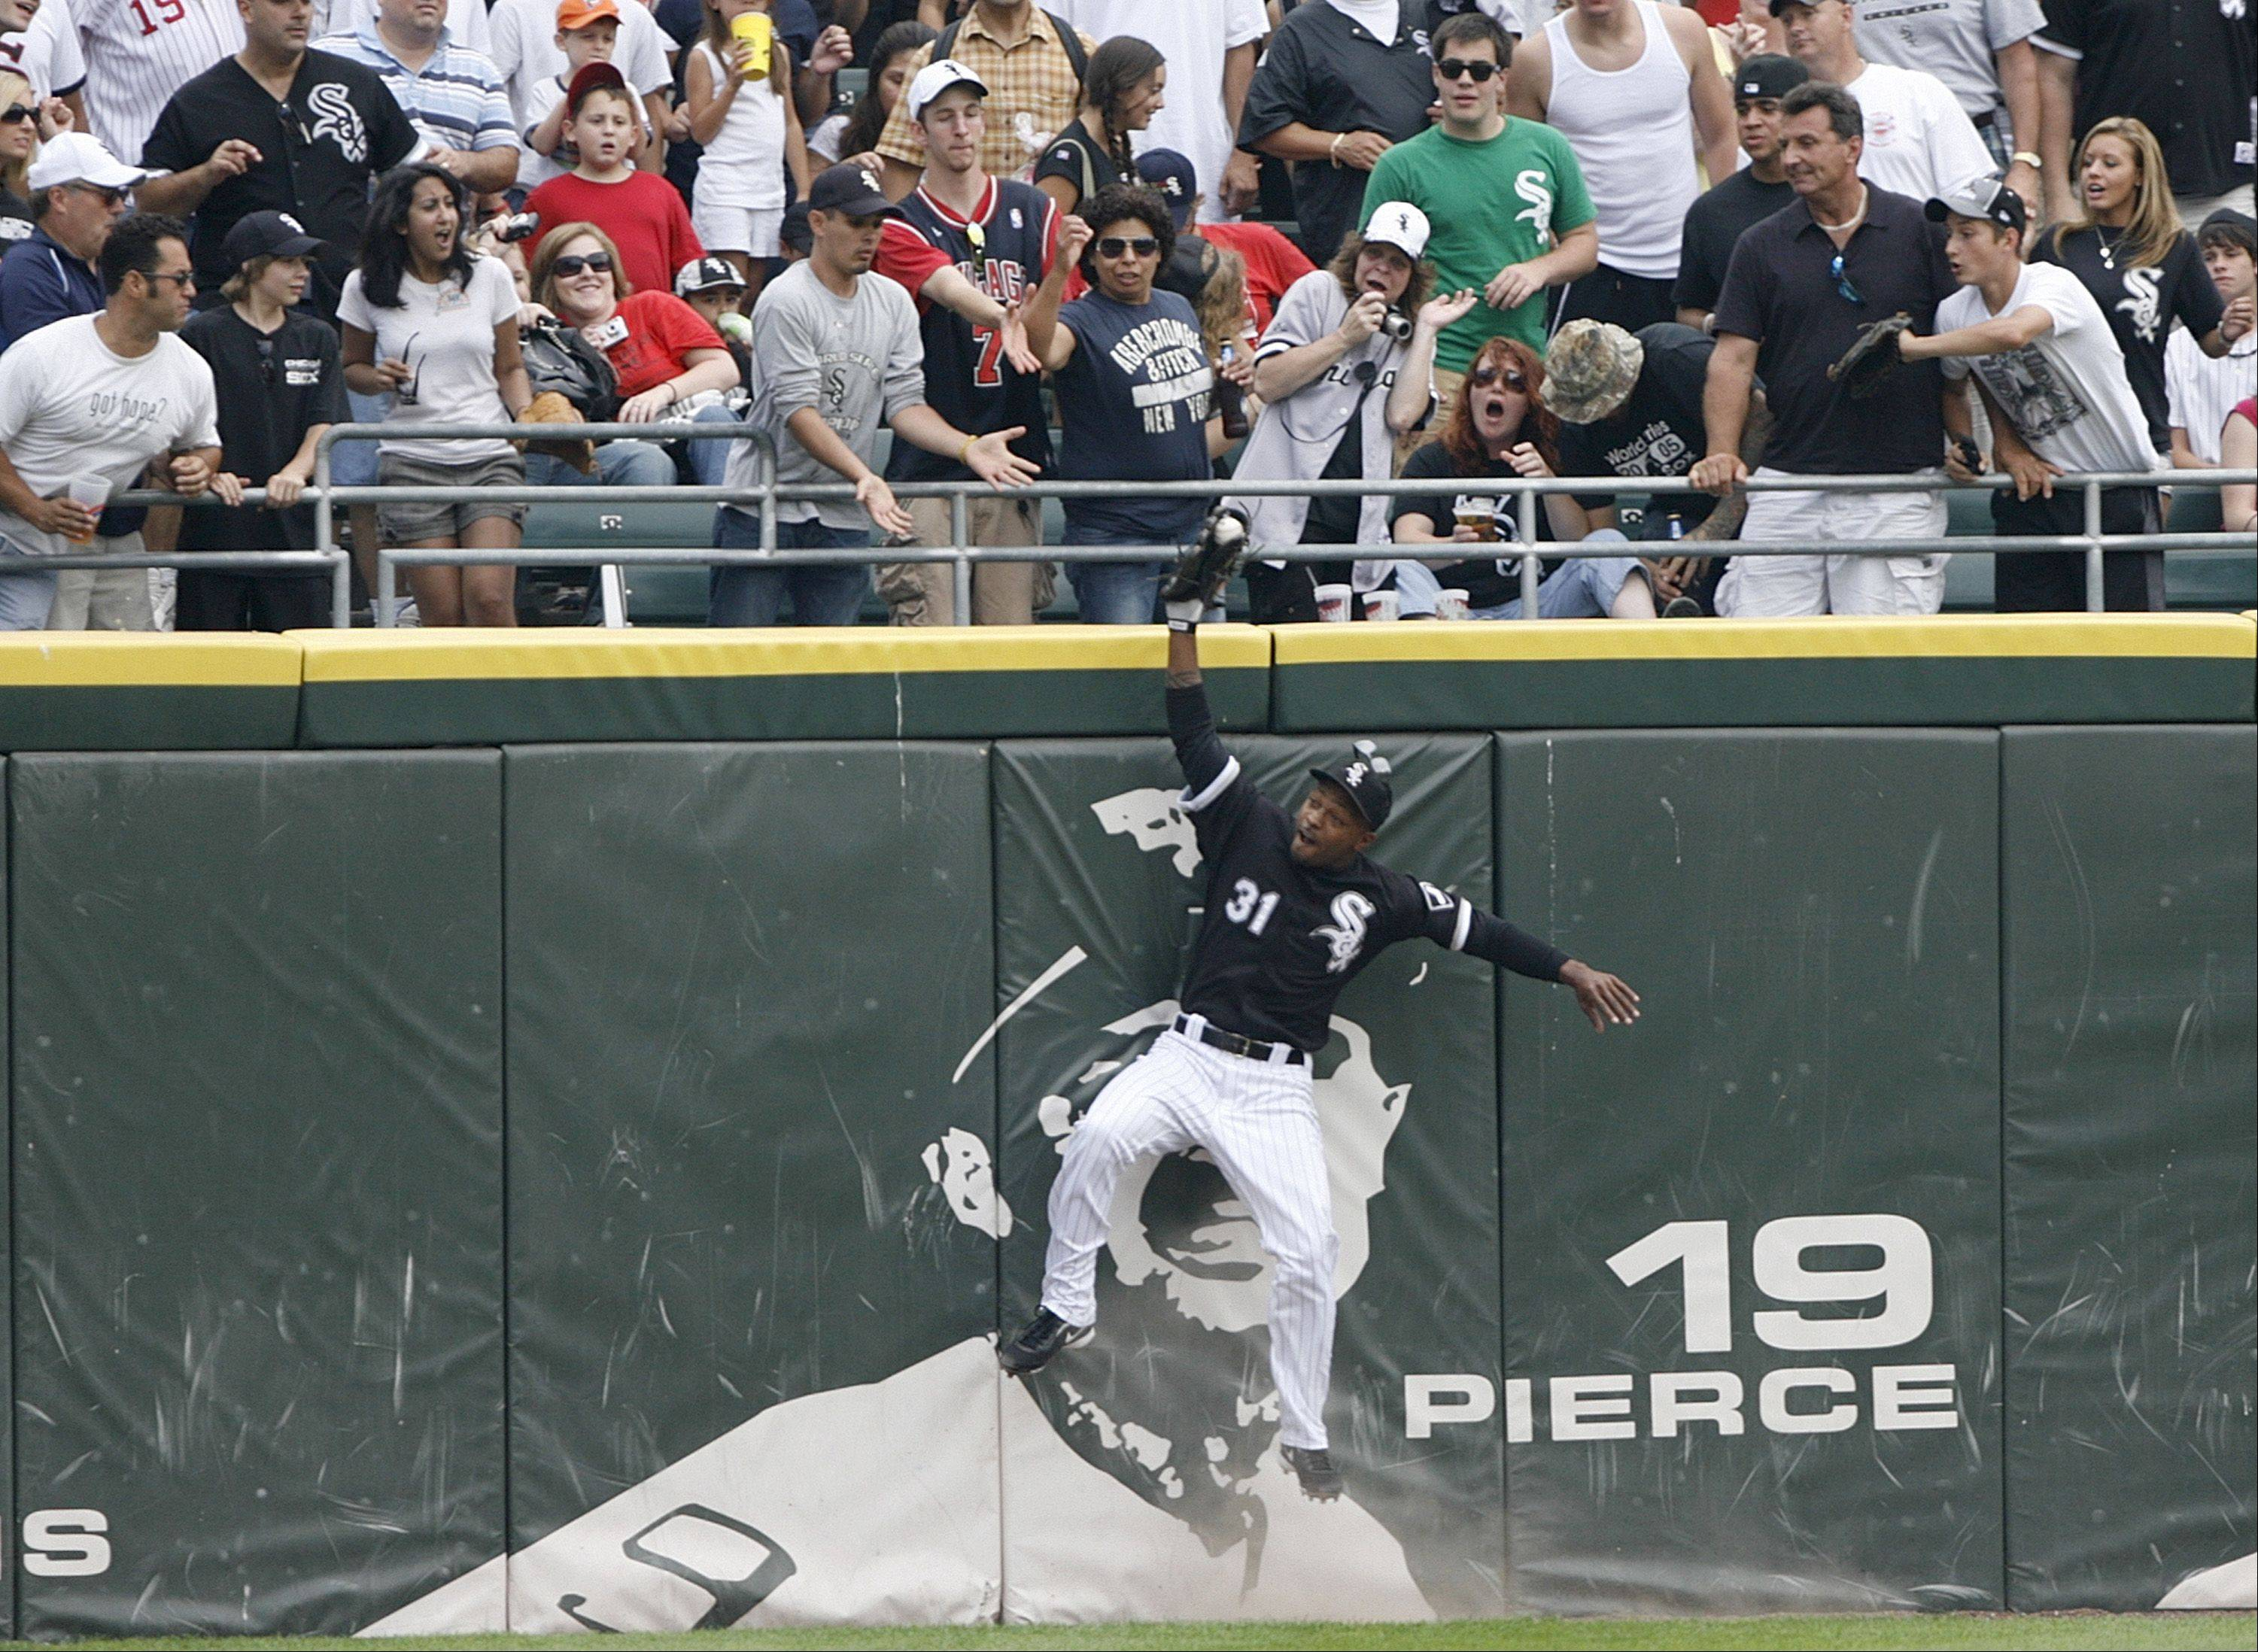 White Sox center fielder Dewayne Wise falls into the wall as he catches a deep fly hit by the Tampa Bay Rays Gabe Kapler during the ninth inning. Mark Buehrle threw a perfect game in the White Sox' 5-0 win.